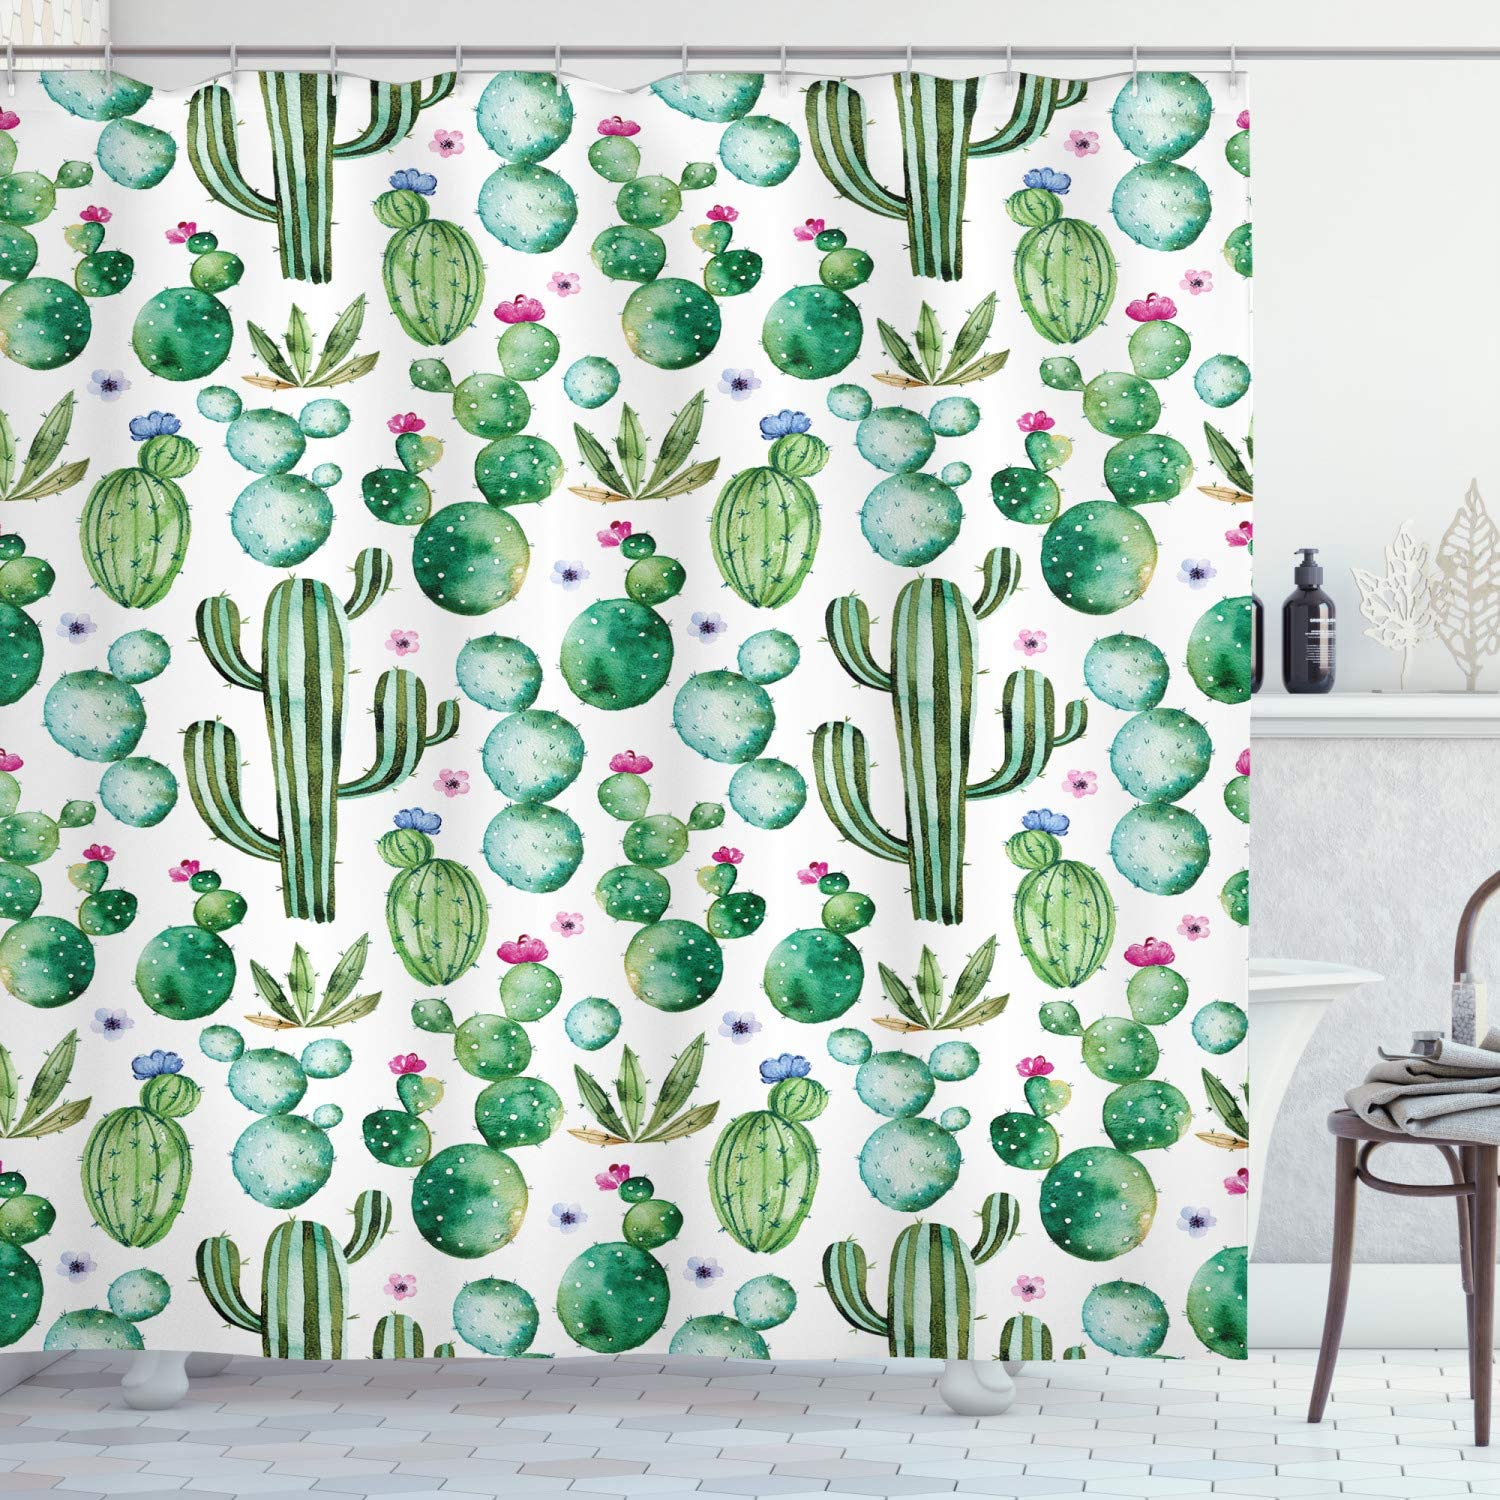 """Ambesonne Green Shower Curtain, Mexican Texas Cactus Plants Spikes Cartoon Like Print, Cloth Fabric Bathroom Decor Set with Hooks, 70"""" Long, Lime Green Pale Pink"""